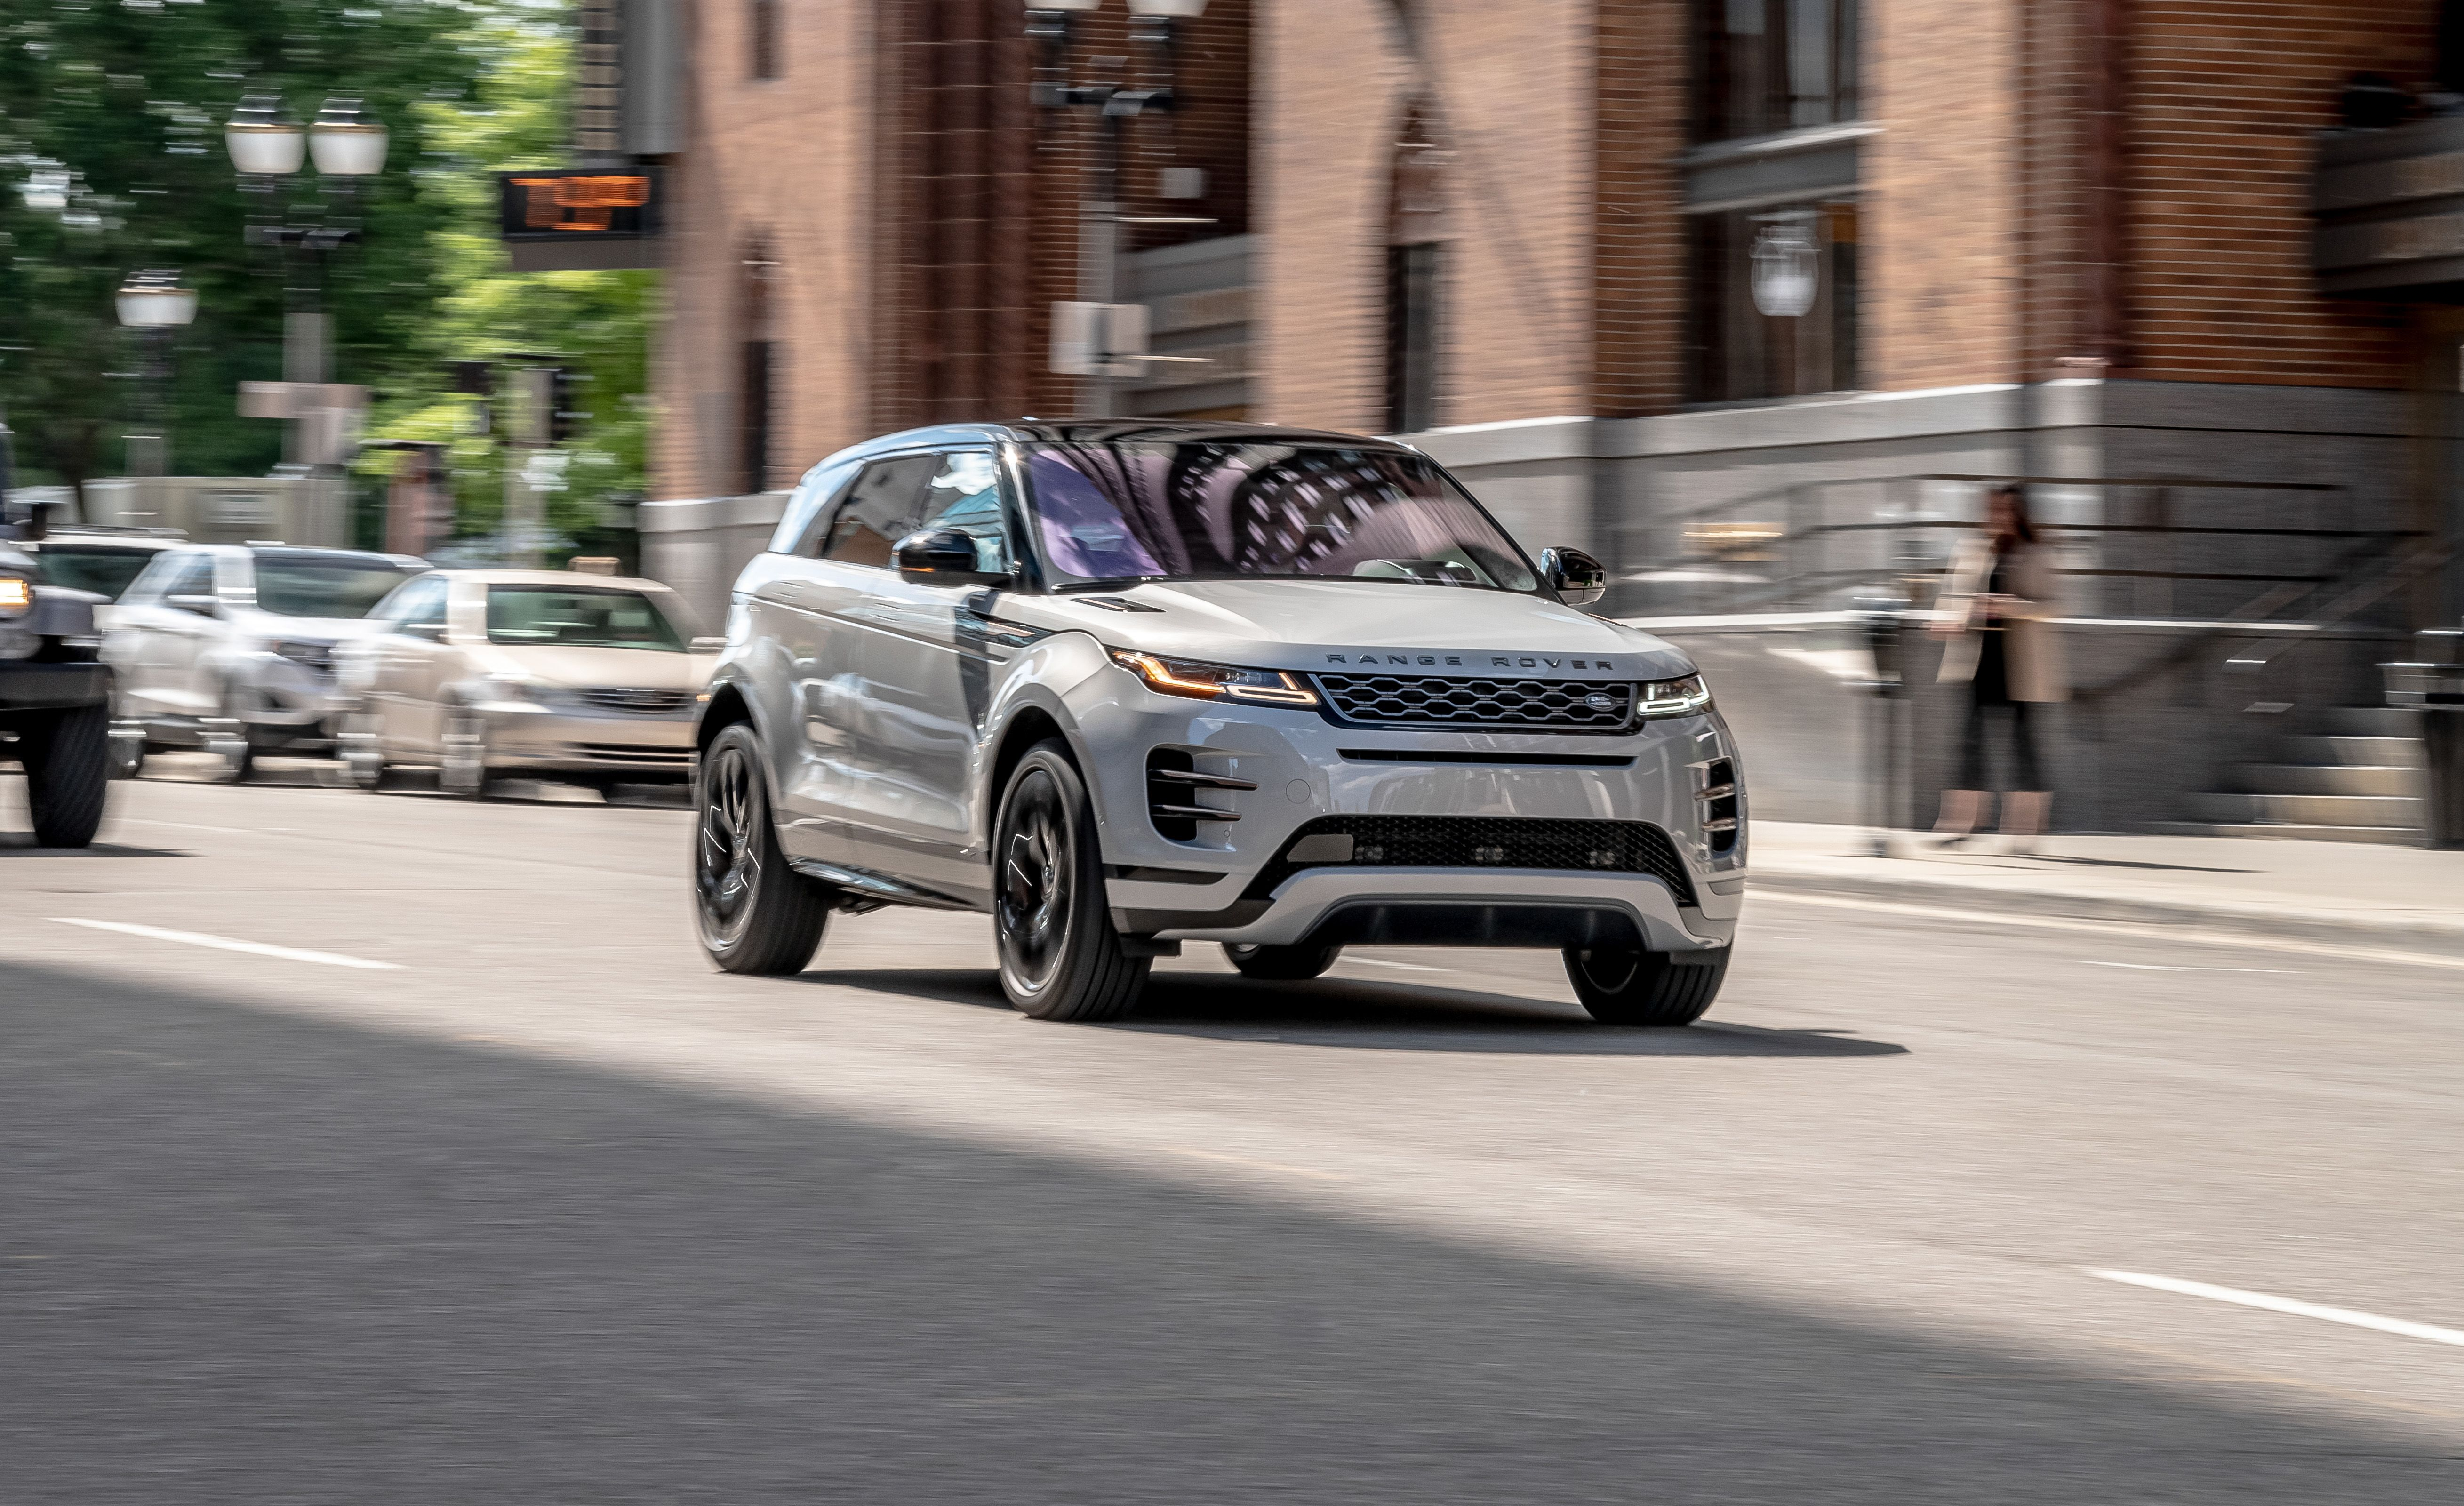 2020 Land Rover Range Rover Evoque Review Pricing And Specs